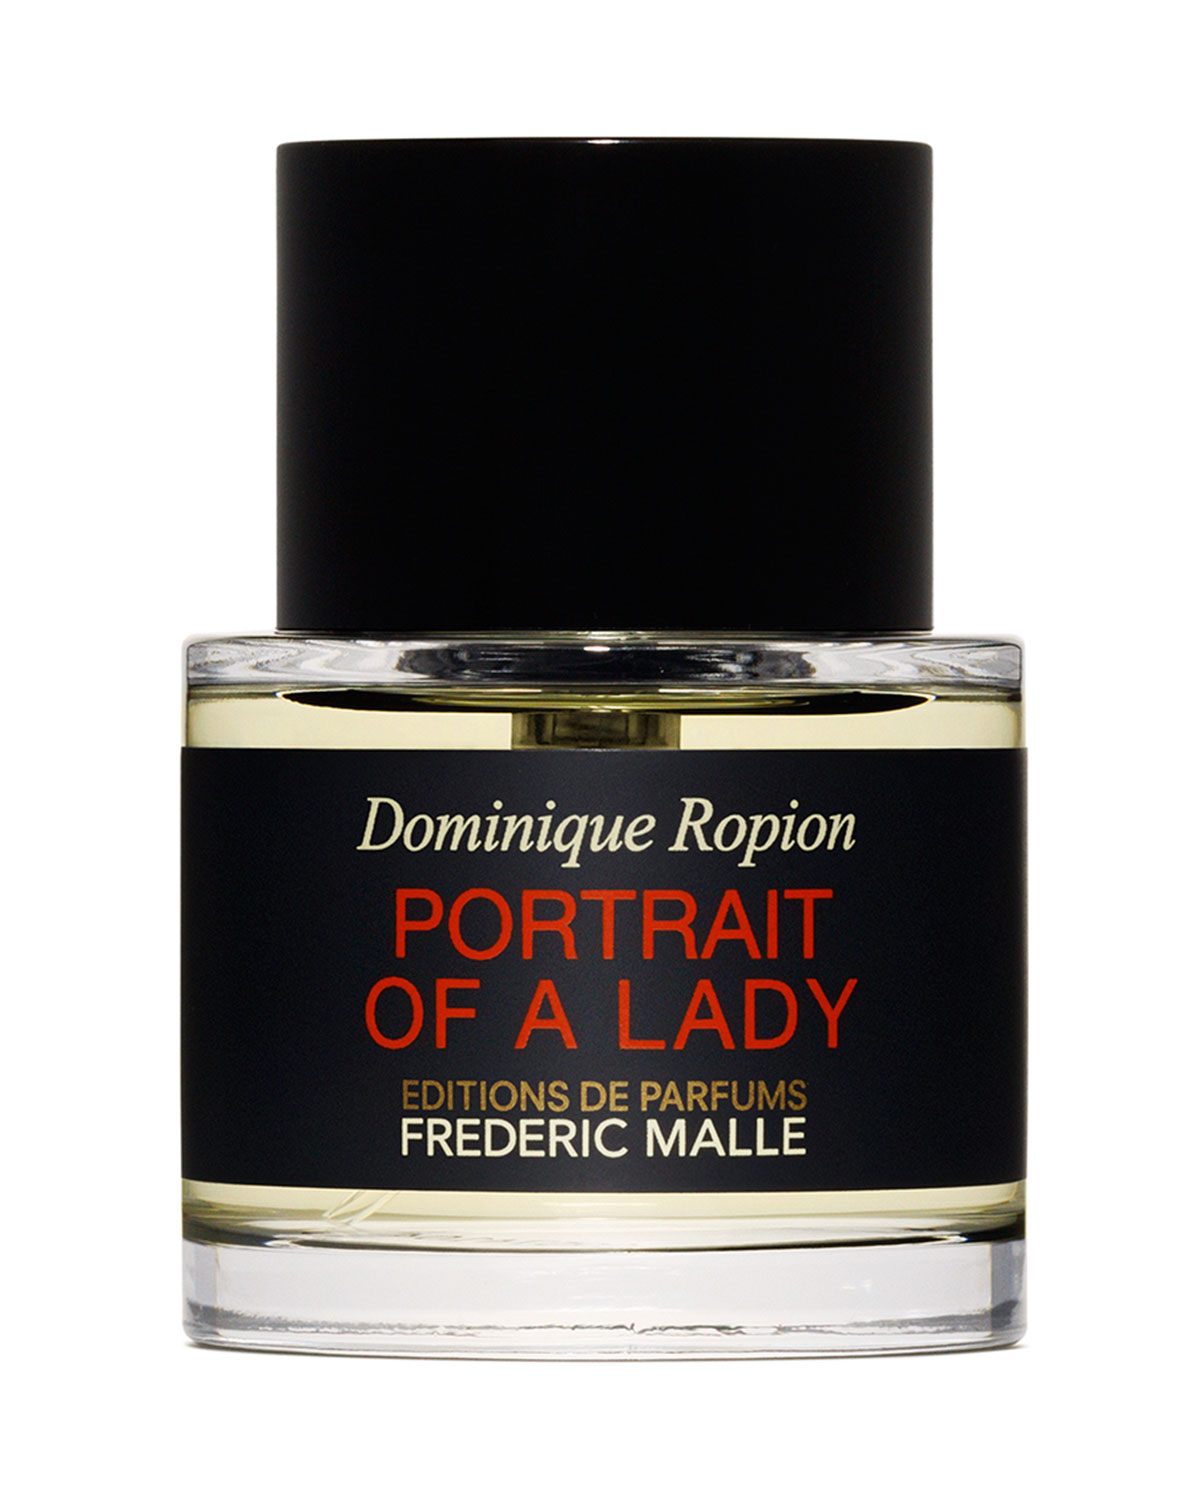 Portrait of a Lady Travel Case Refill, 0.3 oz./ 10 mL